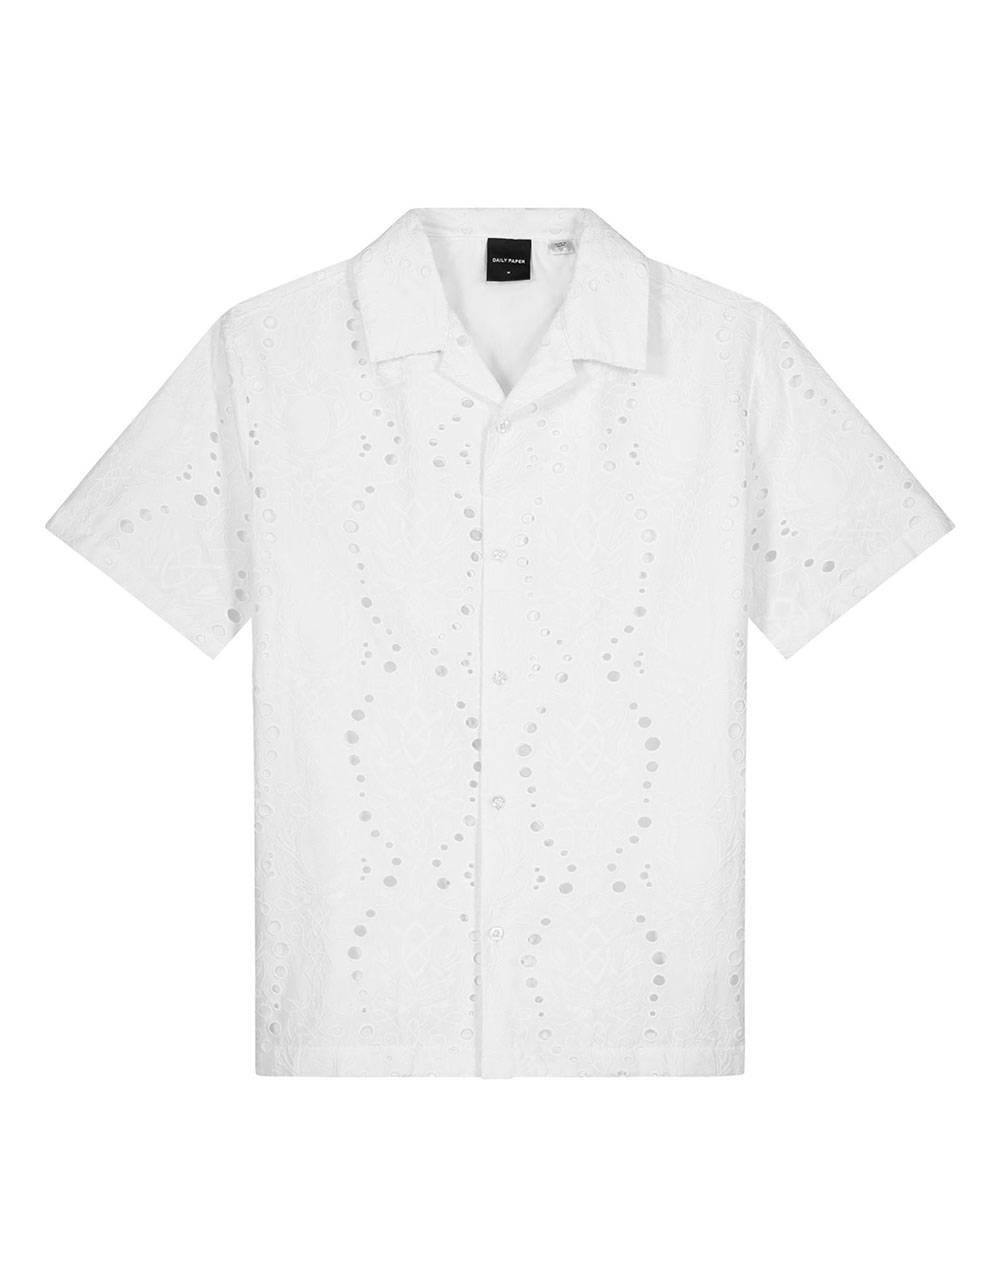 Daily Paper Kovan lace shirt - white DAILY PAPER Shirt 170,00€